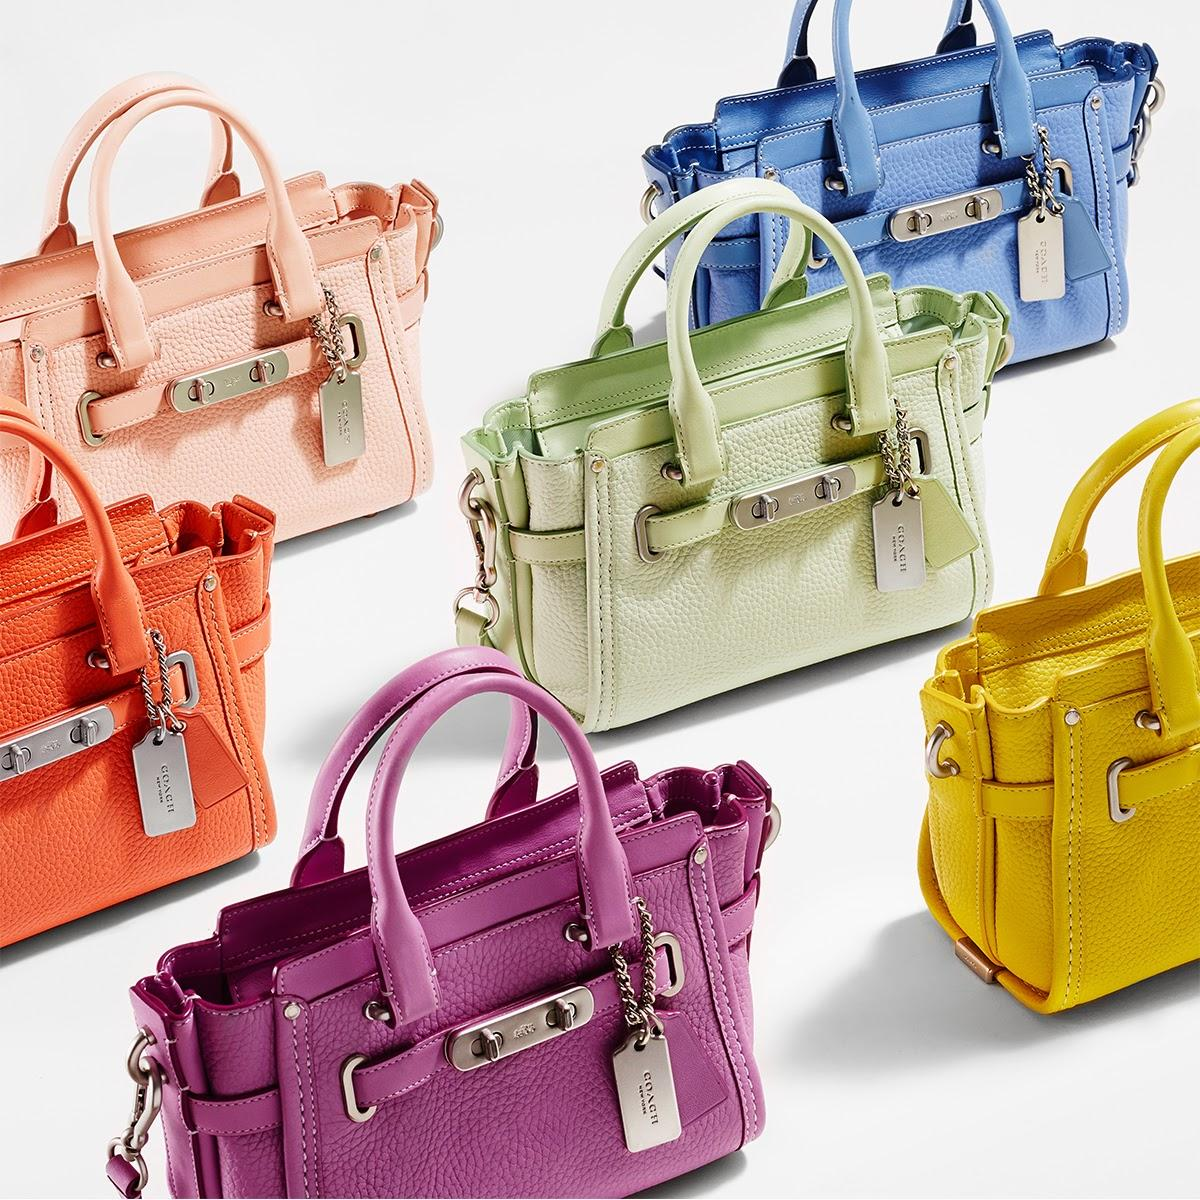 Up to 40% OffSelect Swagger Handbags @ Coach